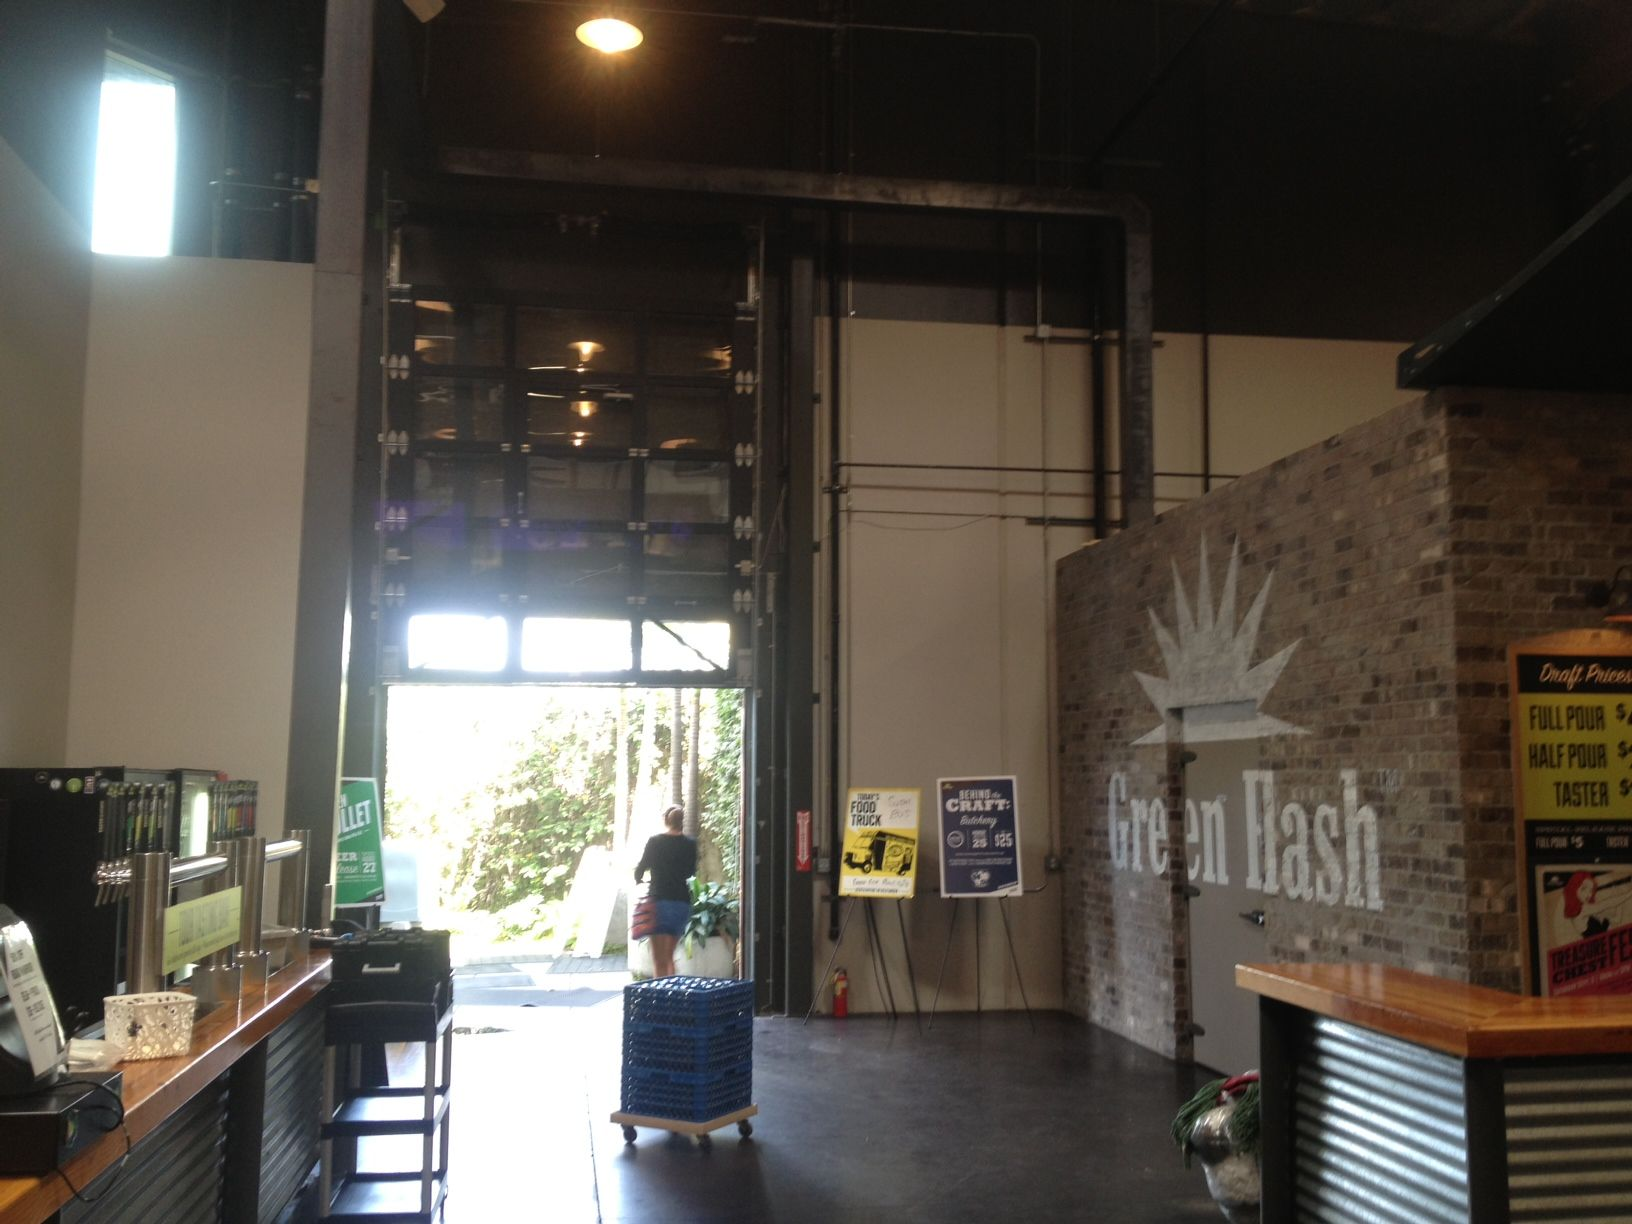 Green Flash Brewery in California with welded Arm-R-Lite glass garage door and & Green Flash Brewery in California with welded Arm-R-Lite glass ... pezcame.com